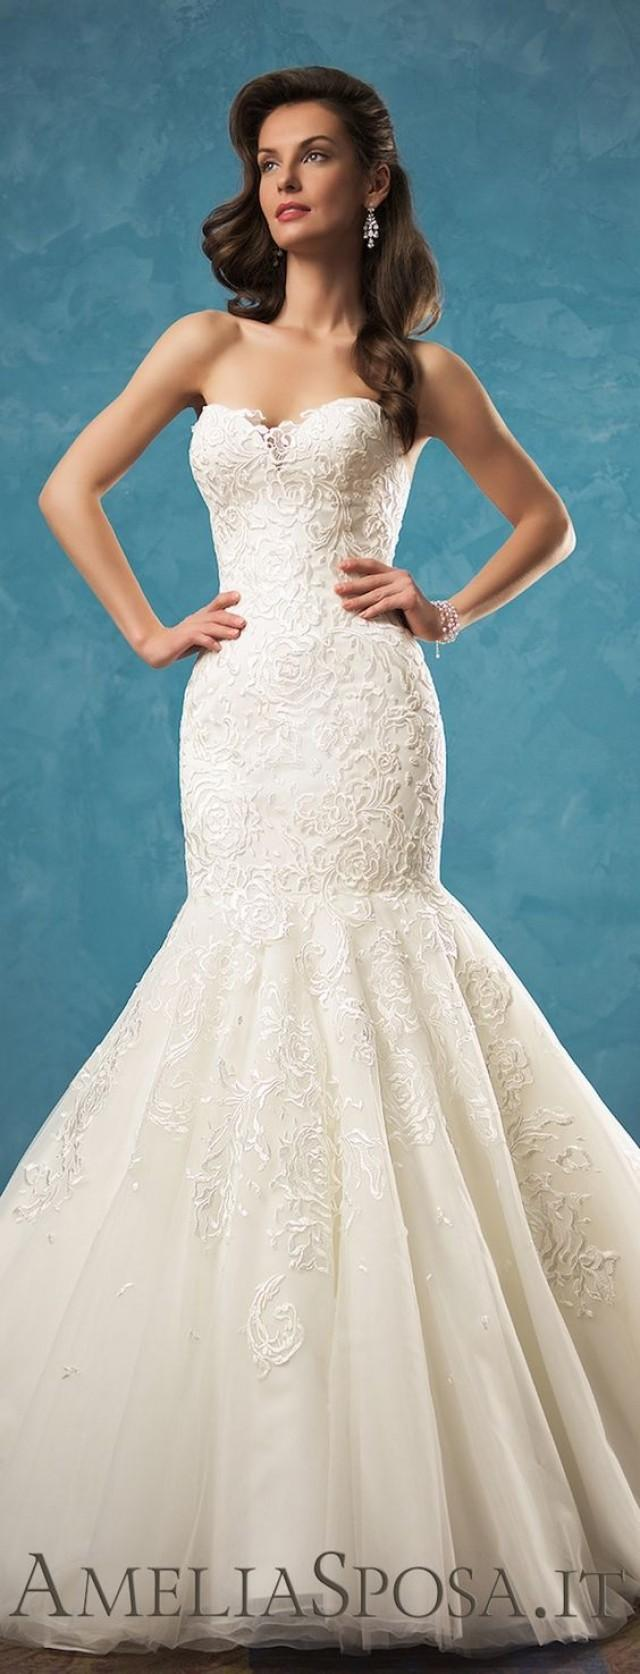 Unique Embroidered Mexican Wedding Dress Photo - All Wedding Dresses ...